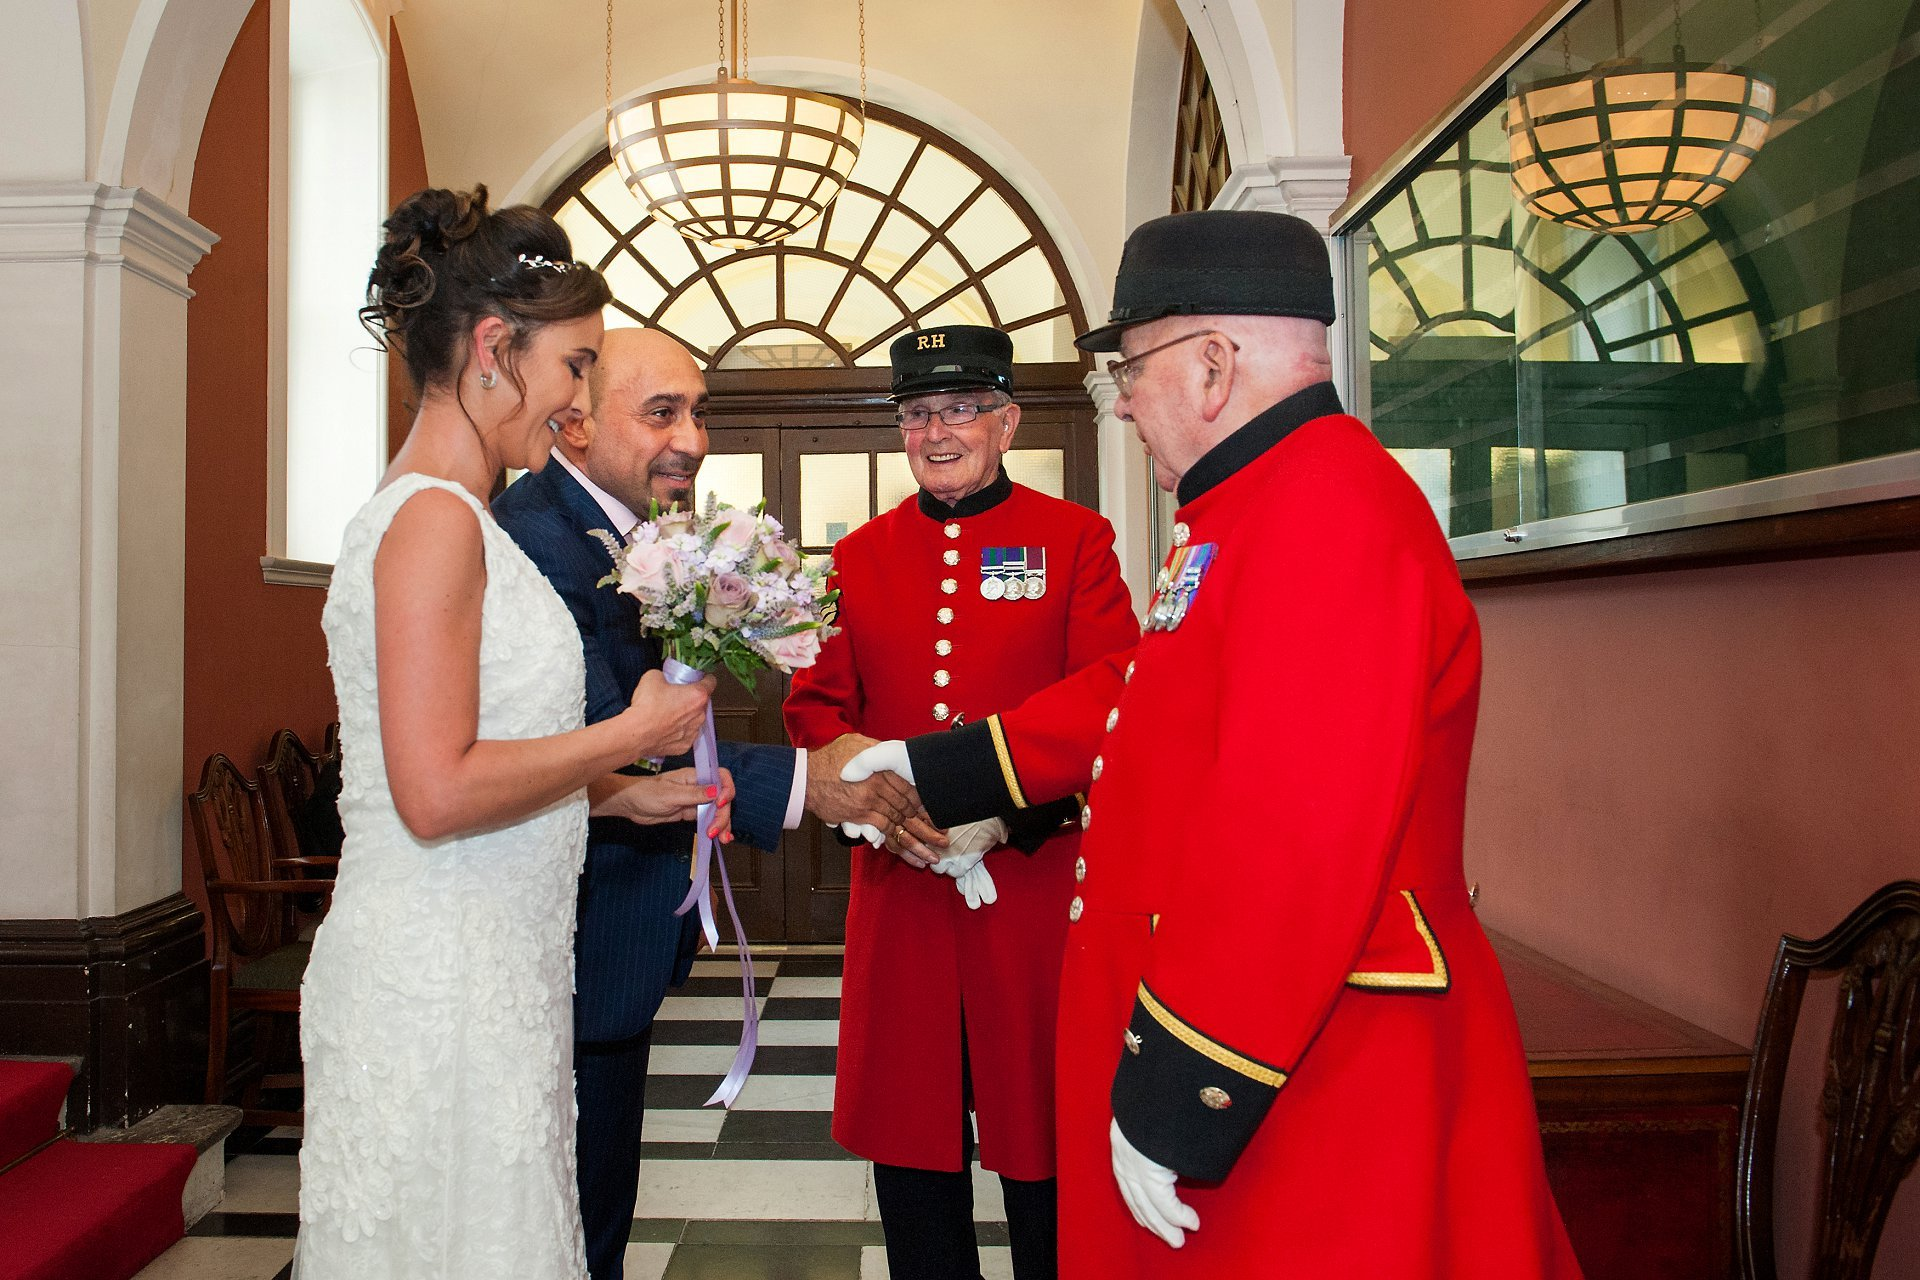 A bride and groom meeting two Chelsea Pensioners from the Royal Hospital in the waiting area inside Chelsea Old Town Hall